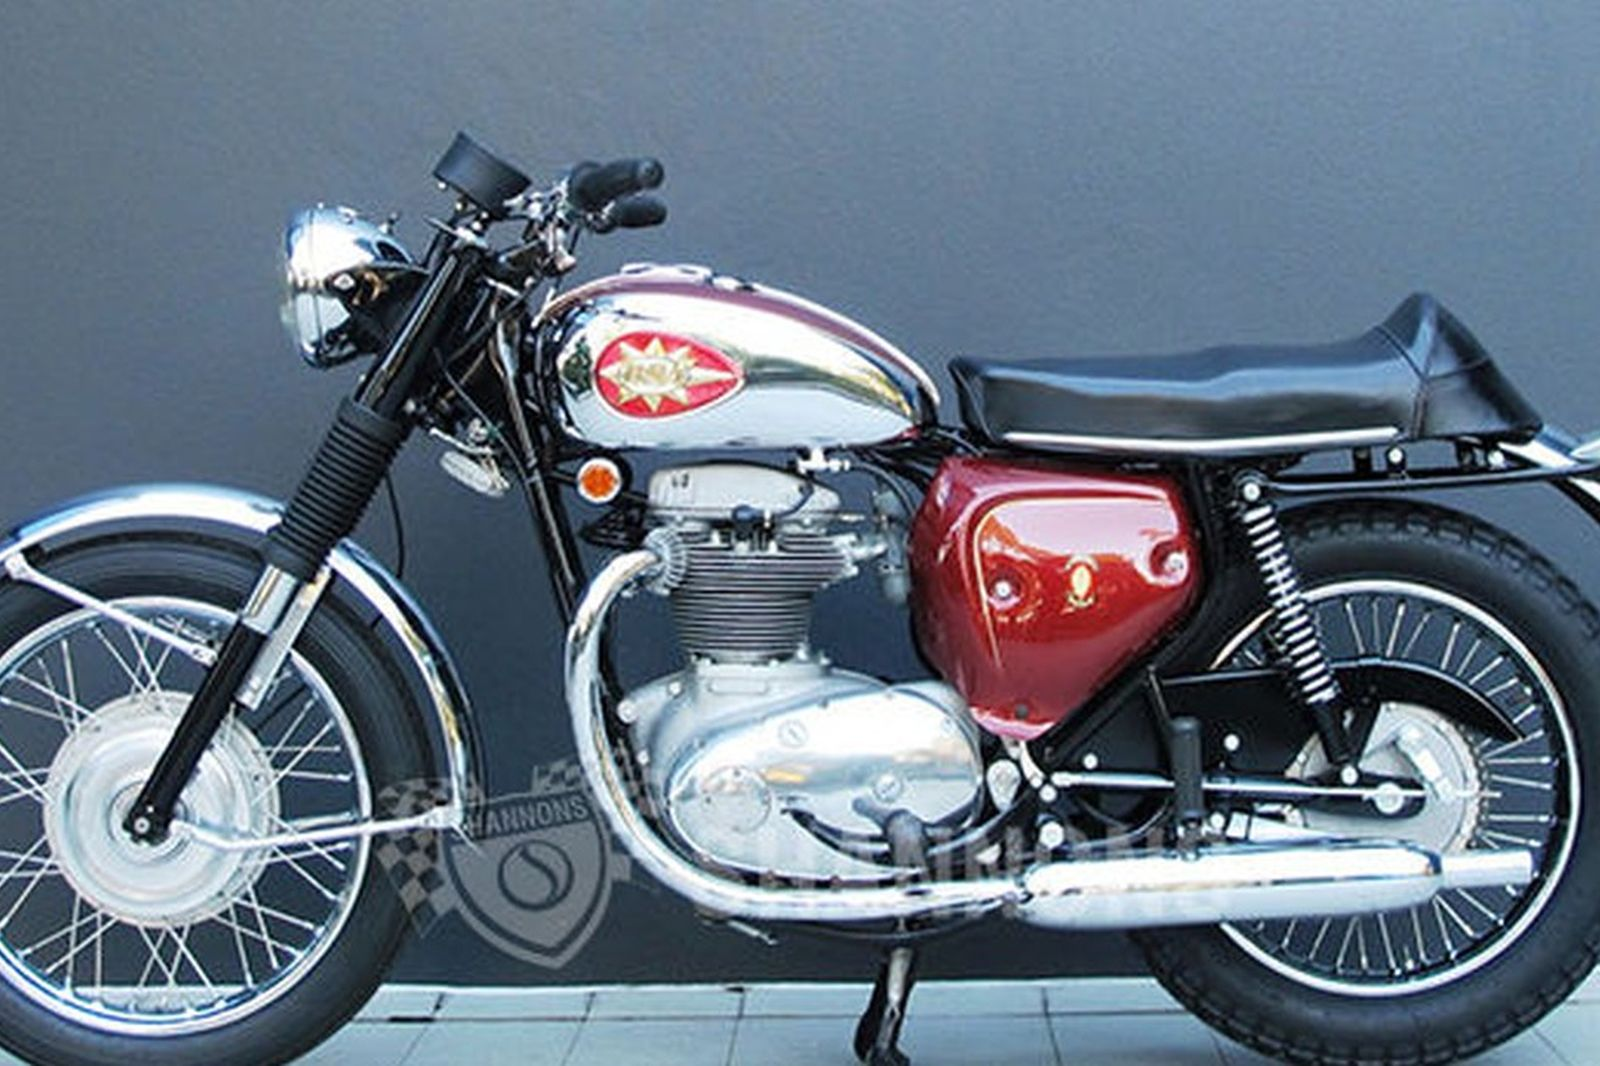 BSA A65 Thunderbolt 650cc Motorcycle